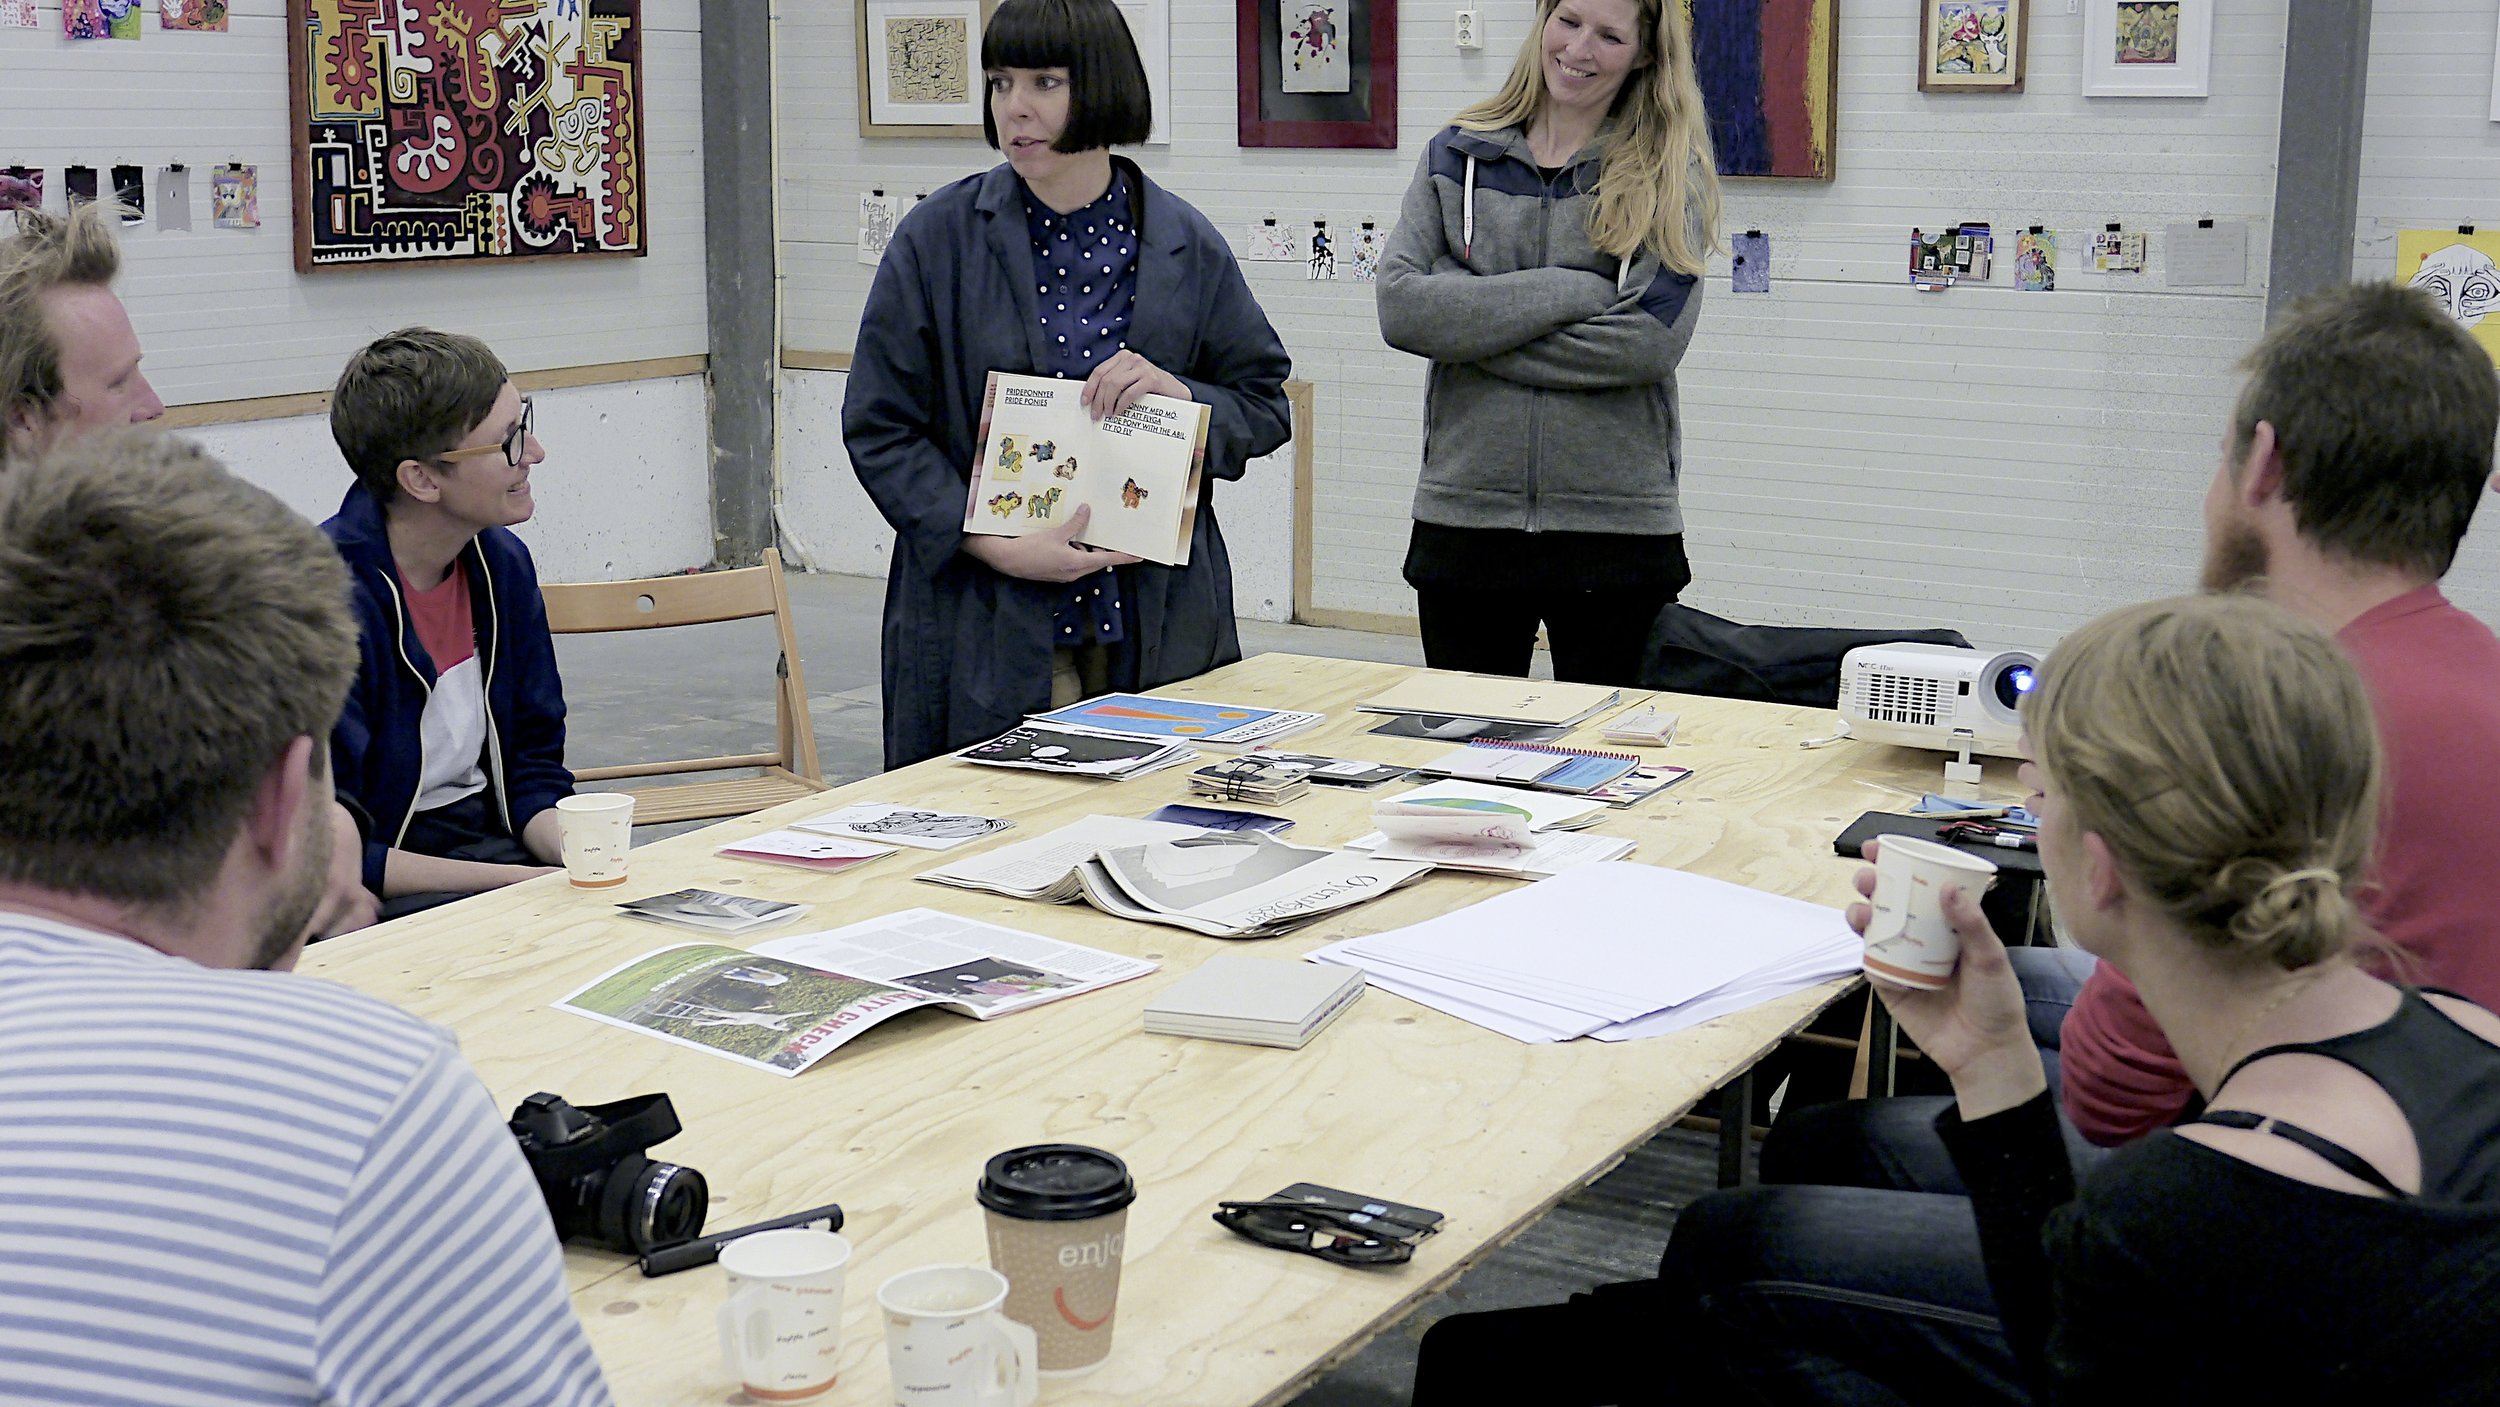 From a fanzine workshop at Trafo Kristiansand, may 2016.